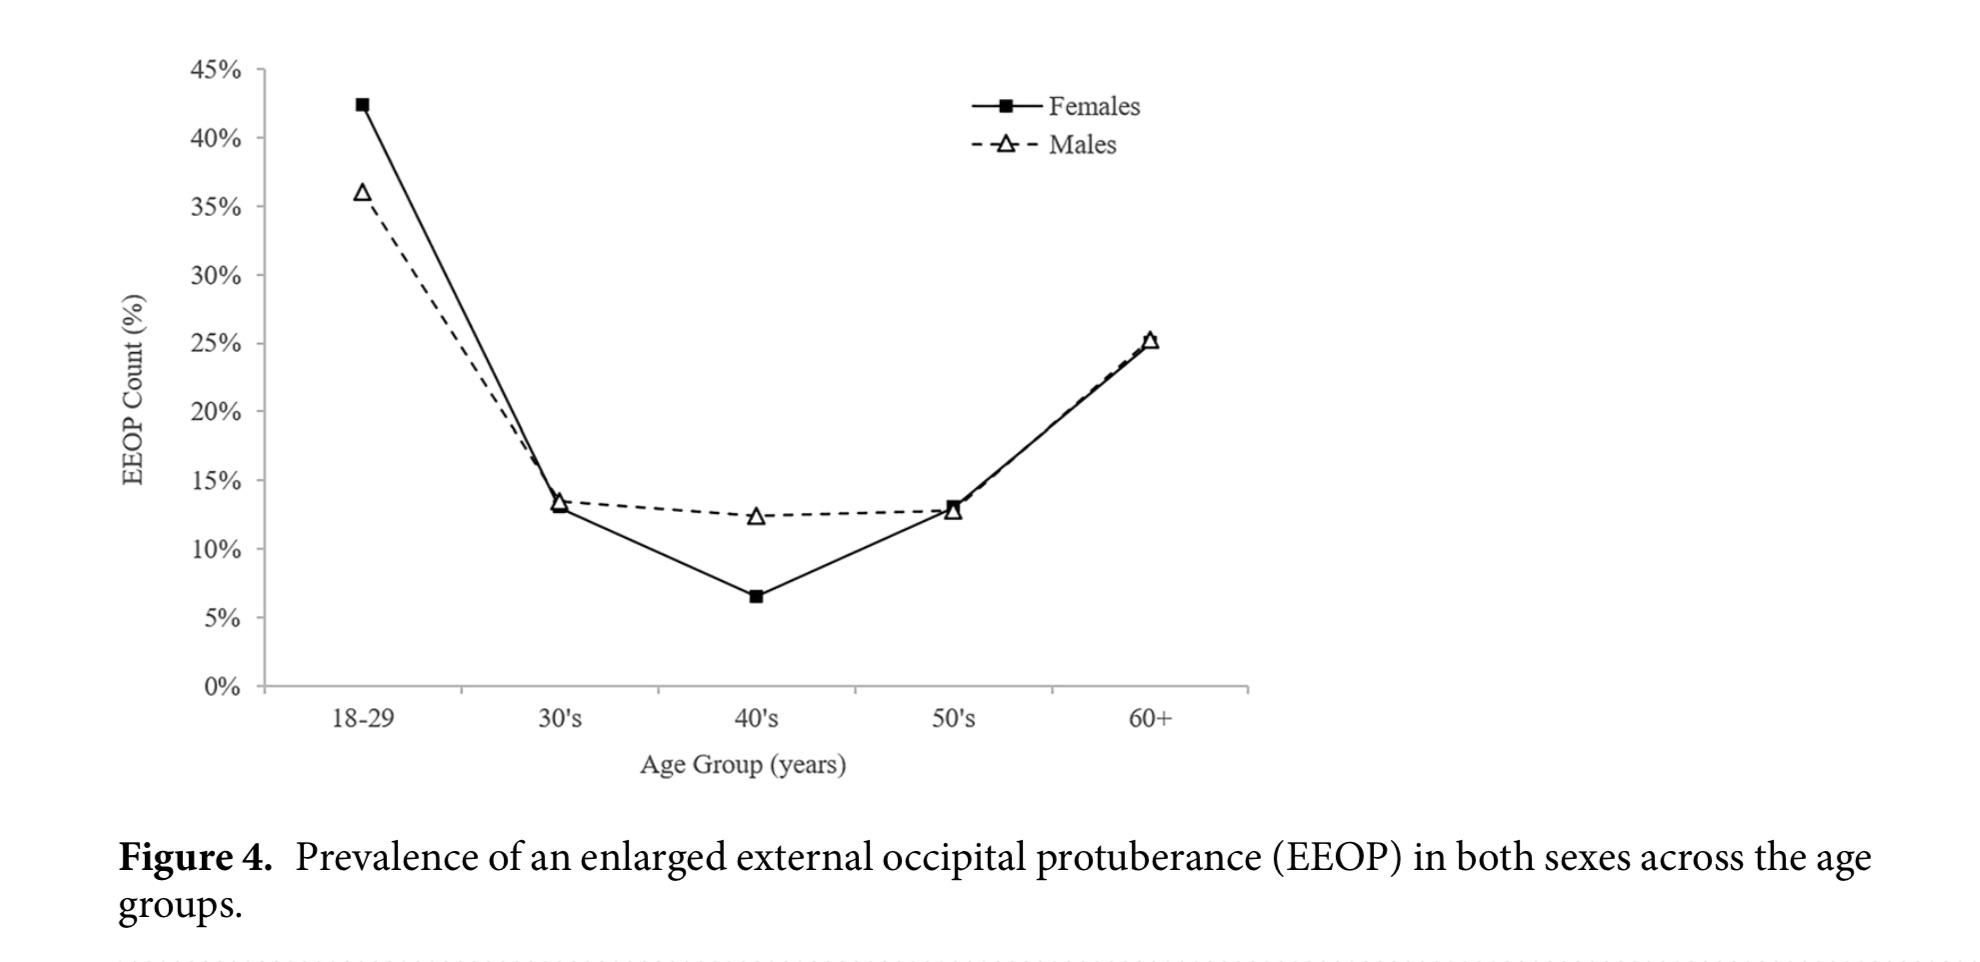 Prevalence of EEOPs